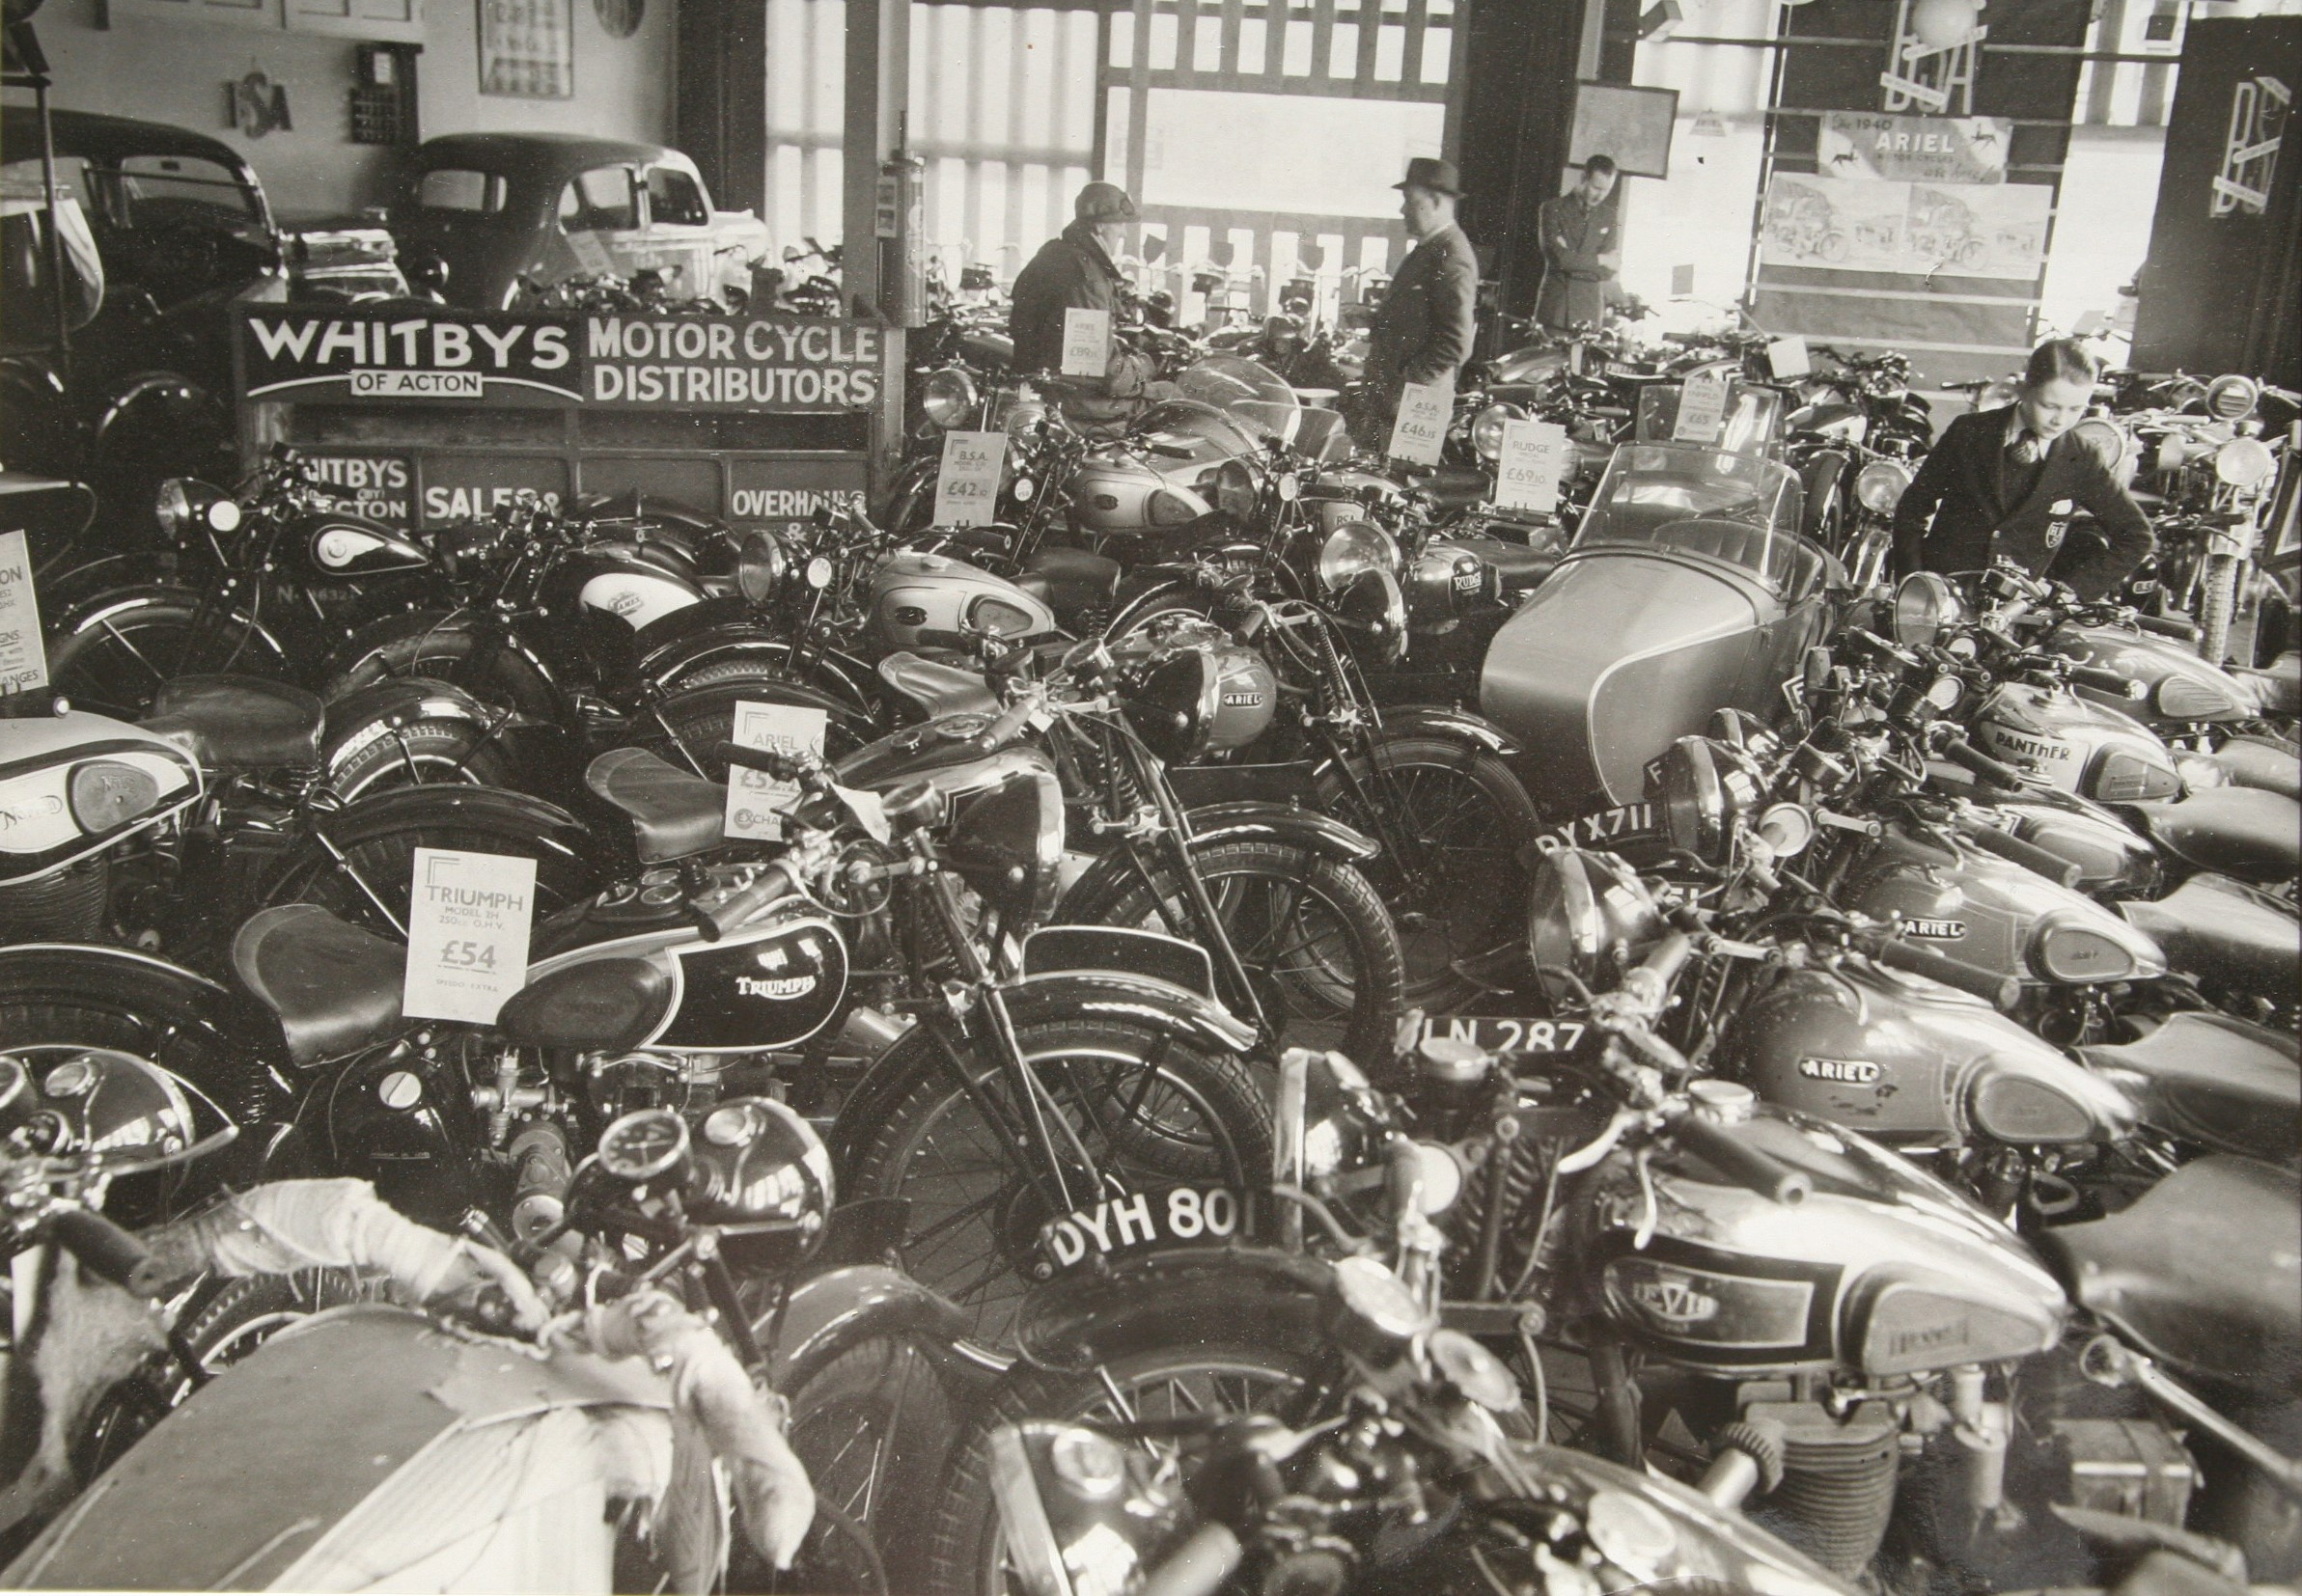 Whitbys of Acton motor bikes